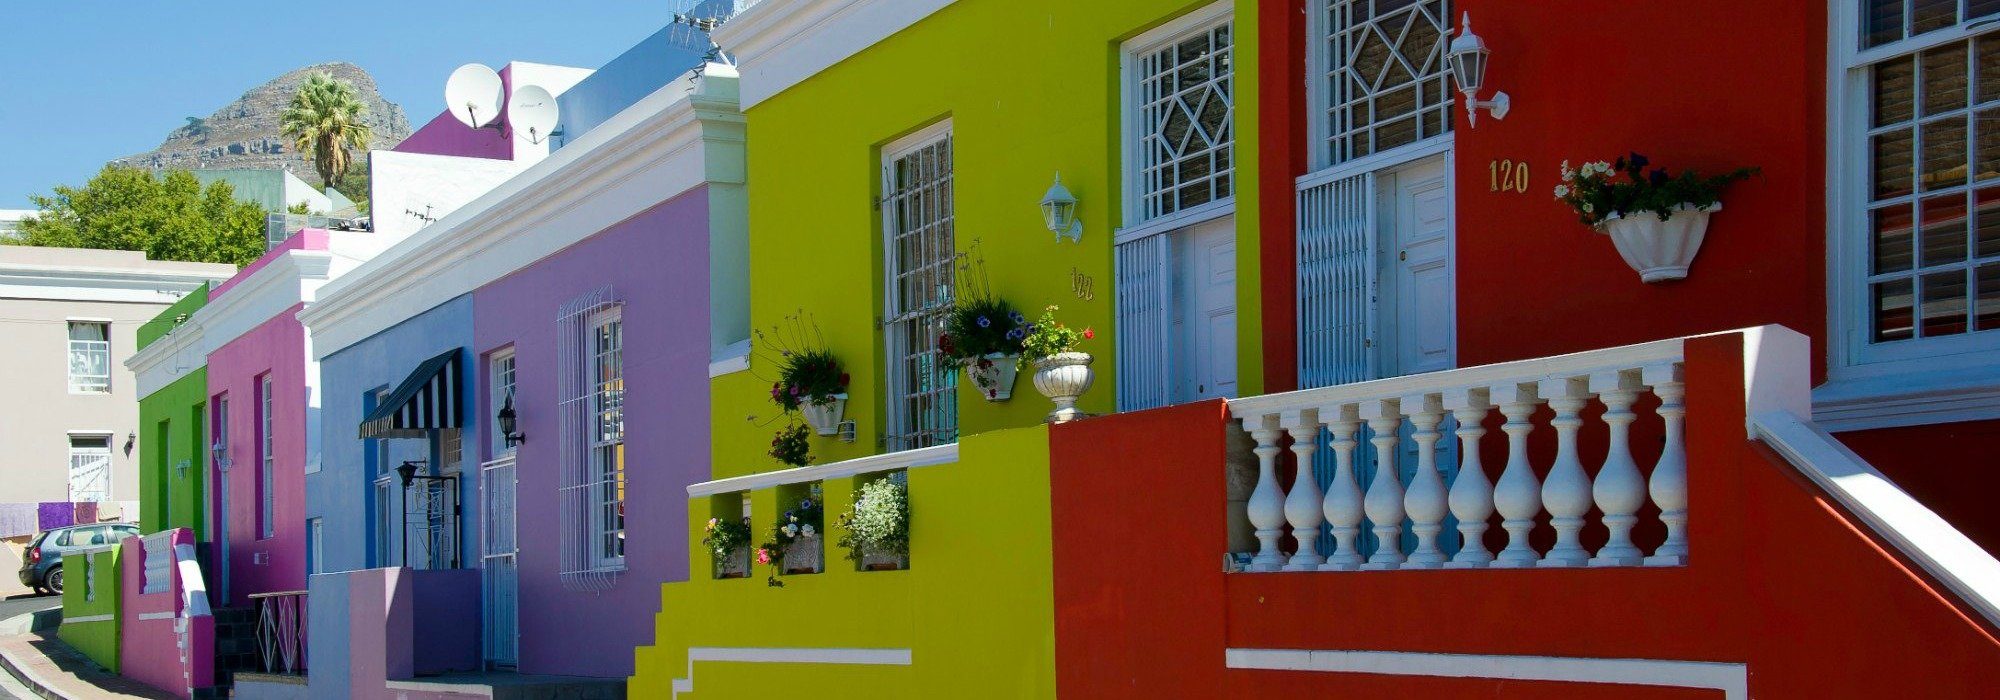 Cape Malay Quarter, Bo Kaap